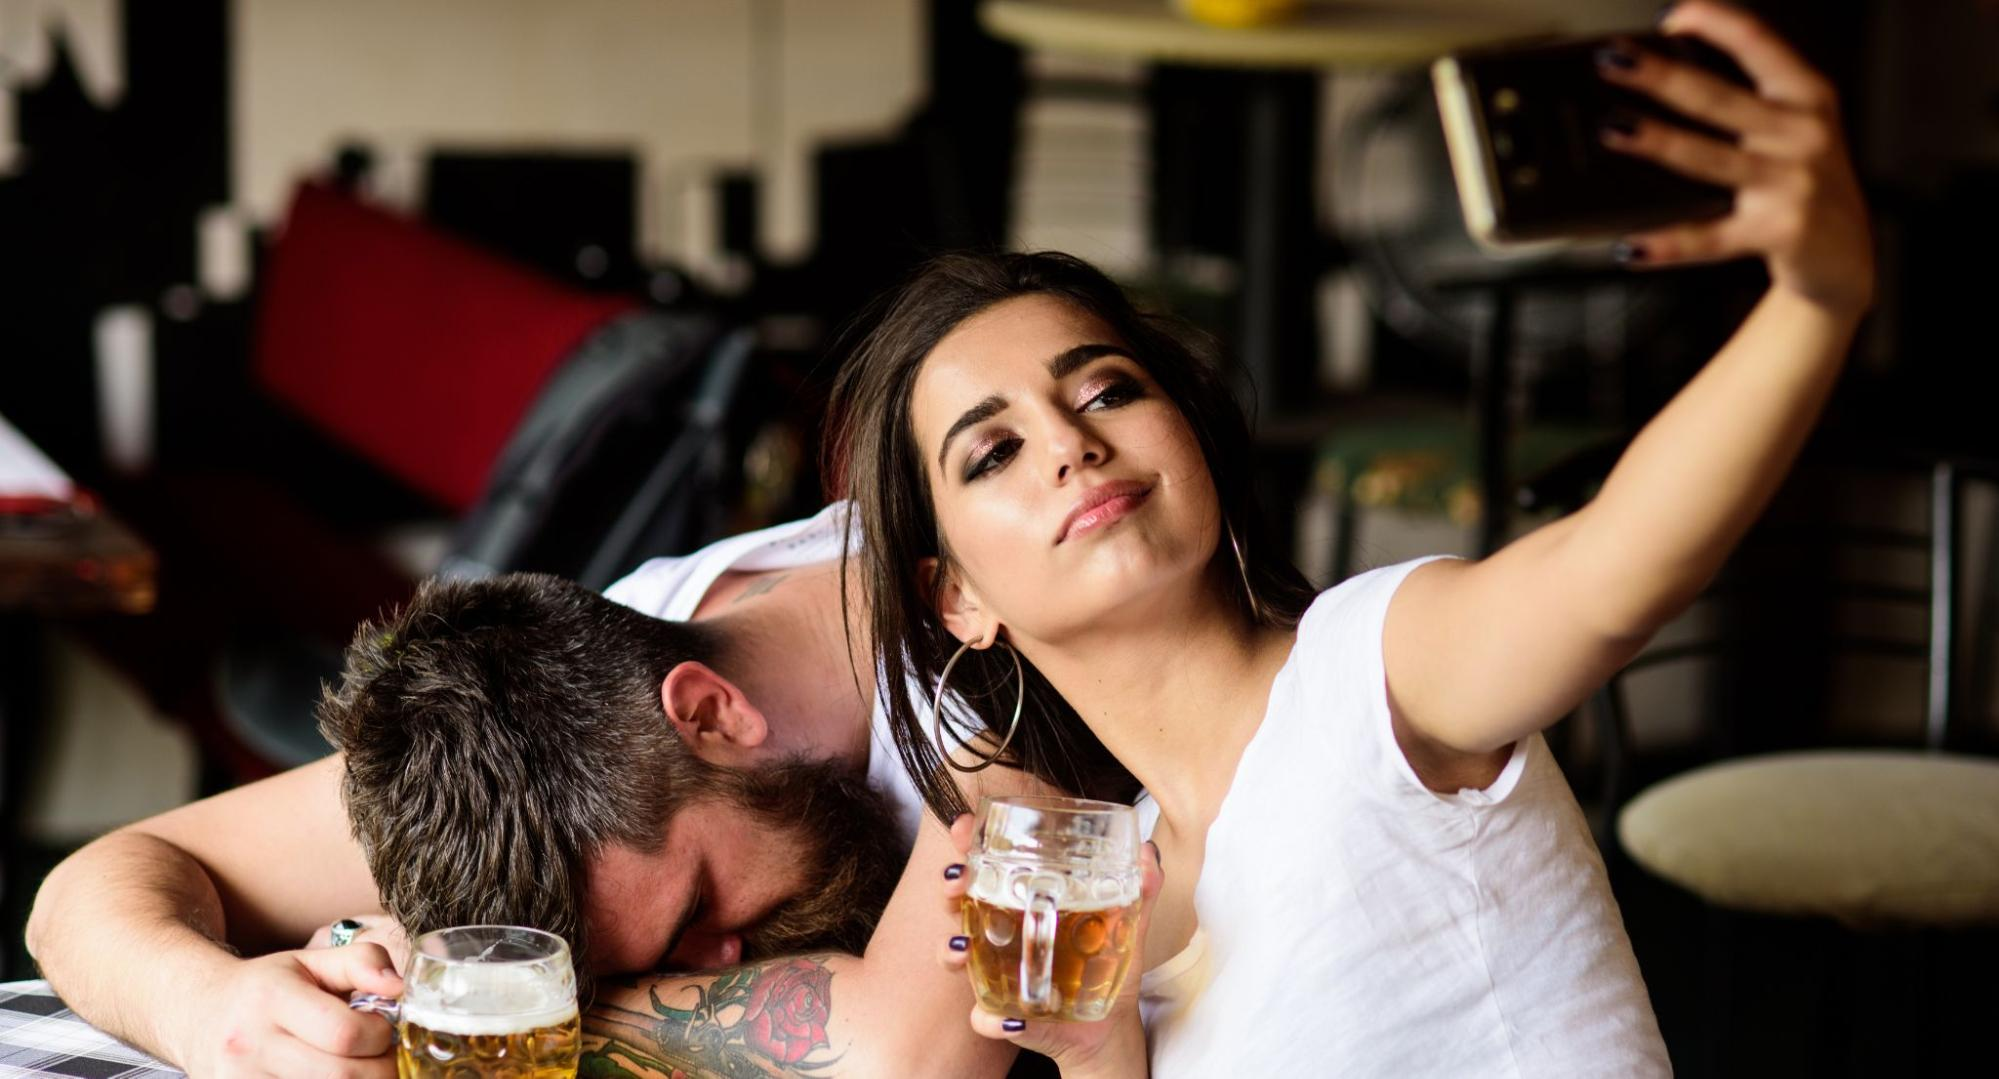 Woman taking a selfie with an intoxicated man behind her